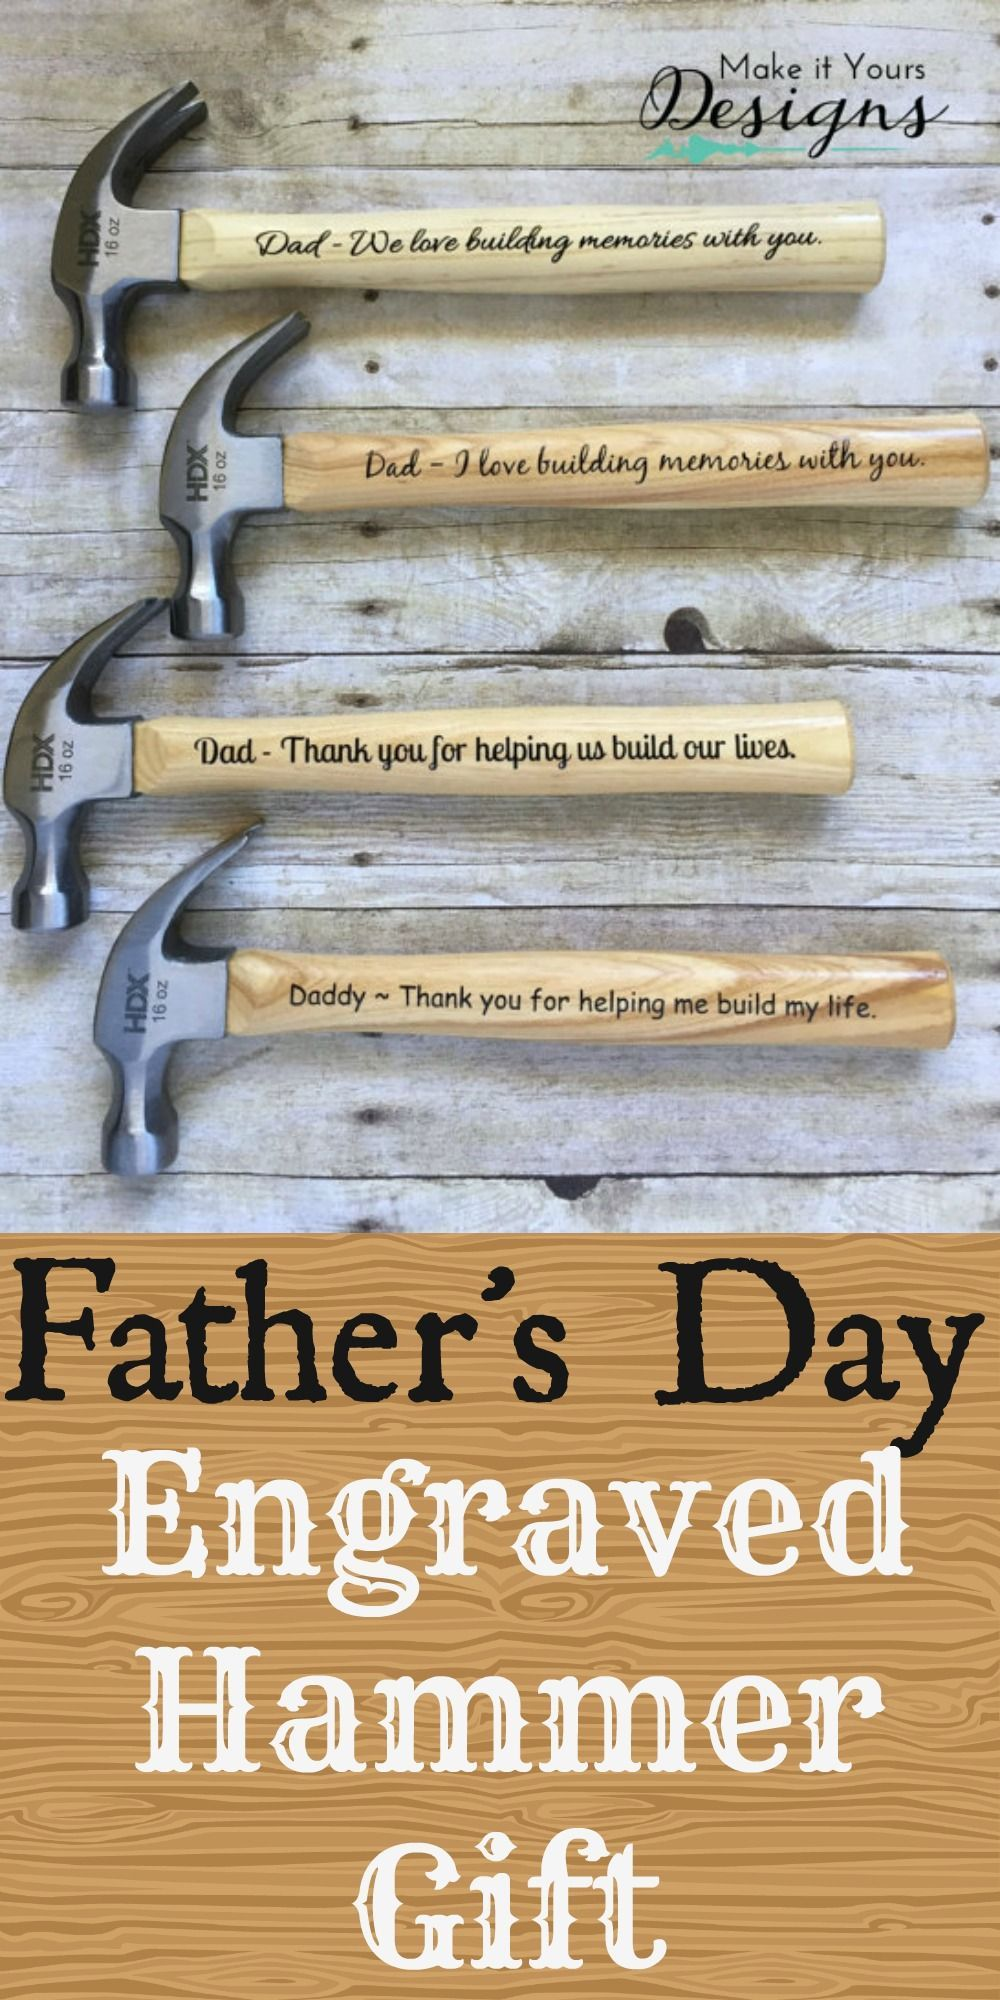 Cool Christmas Gifts For Dad.The Ultimate Fathers Day Gift For The Handy Dad Spoil Him